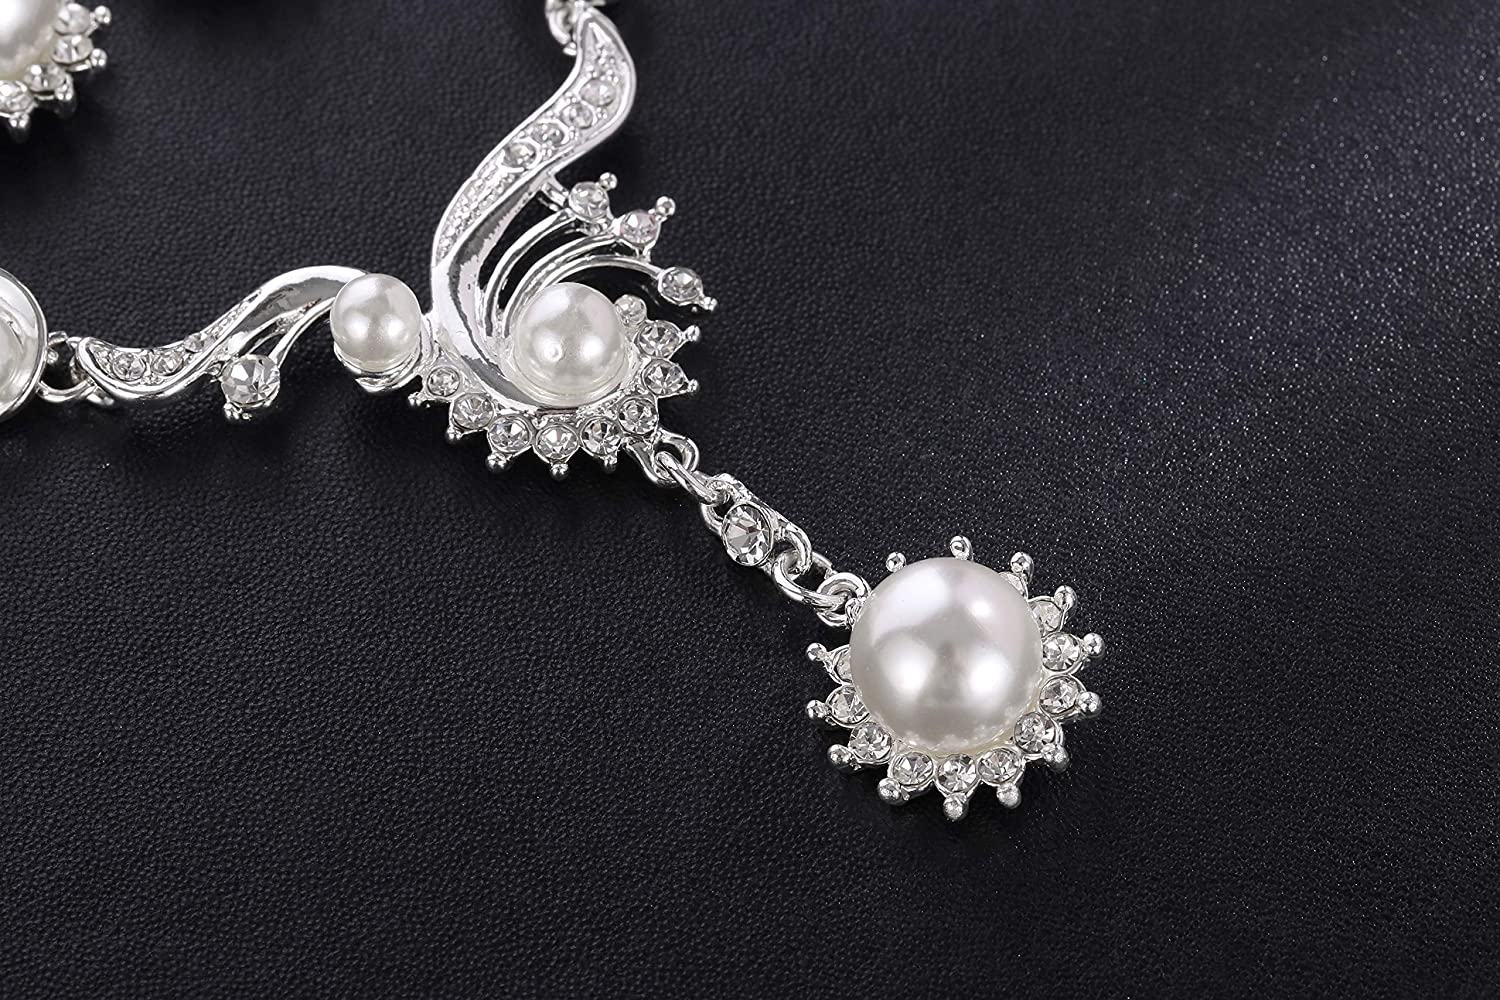 MOOCHI Womens Simulated Pearls Silver Plated Necklace Earrings Jewelry Set for Wedding Brides Braidsmaid Prom Costume Birthday